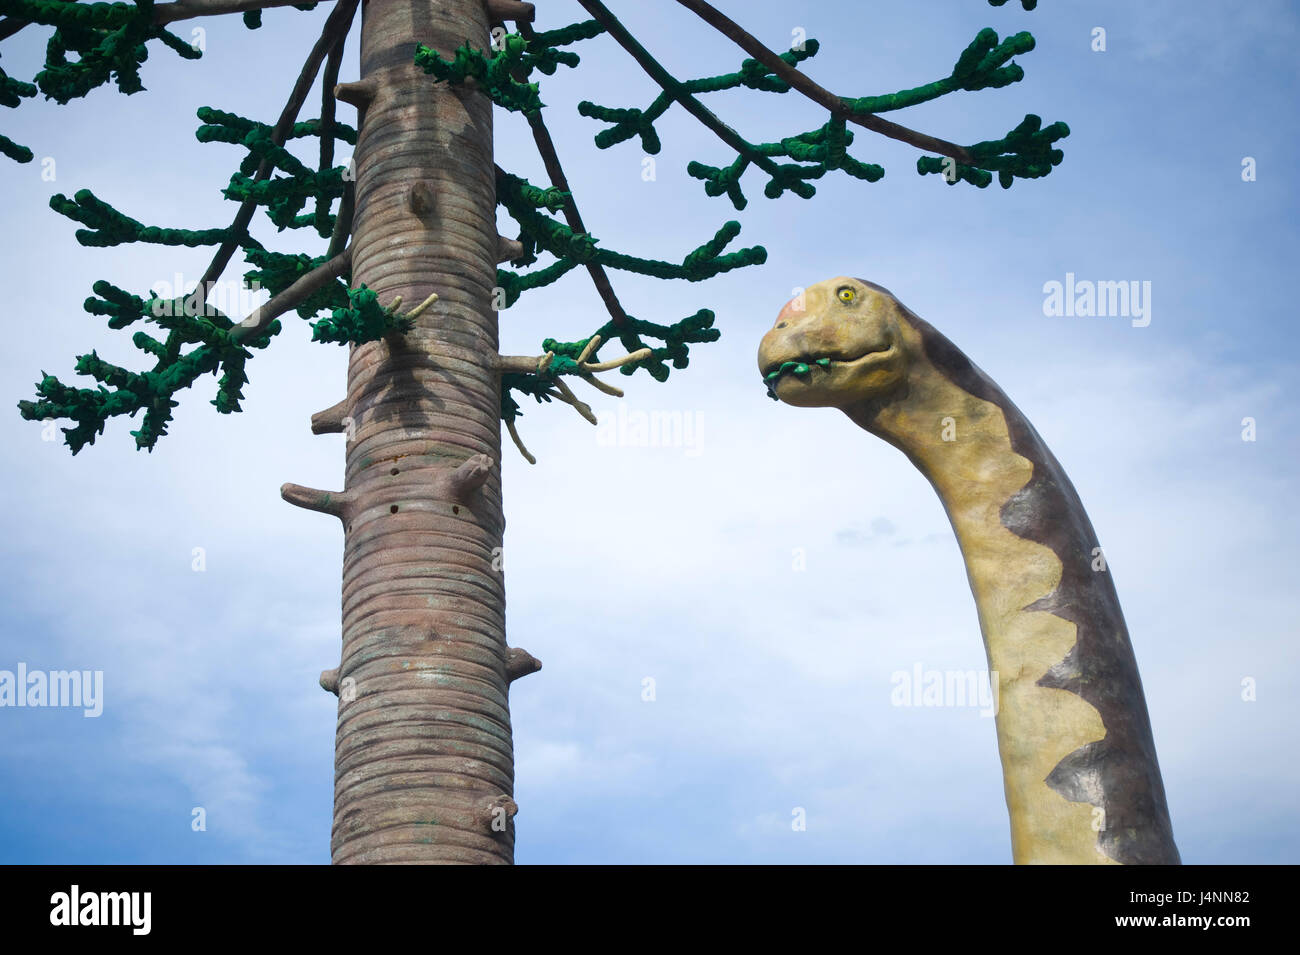 Replica of sauropod camarasaurus eating leafs of araucaria conifer tree near IGEA village, La Rioja, Spain. sauropoda Stock Photo